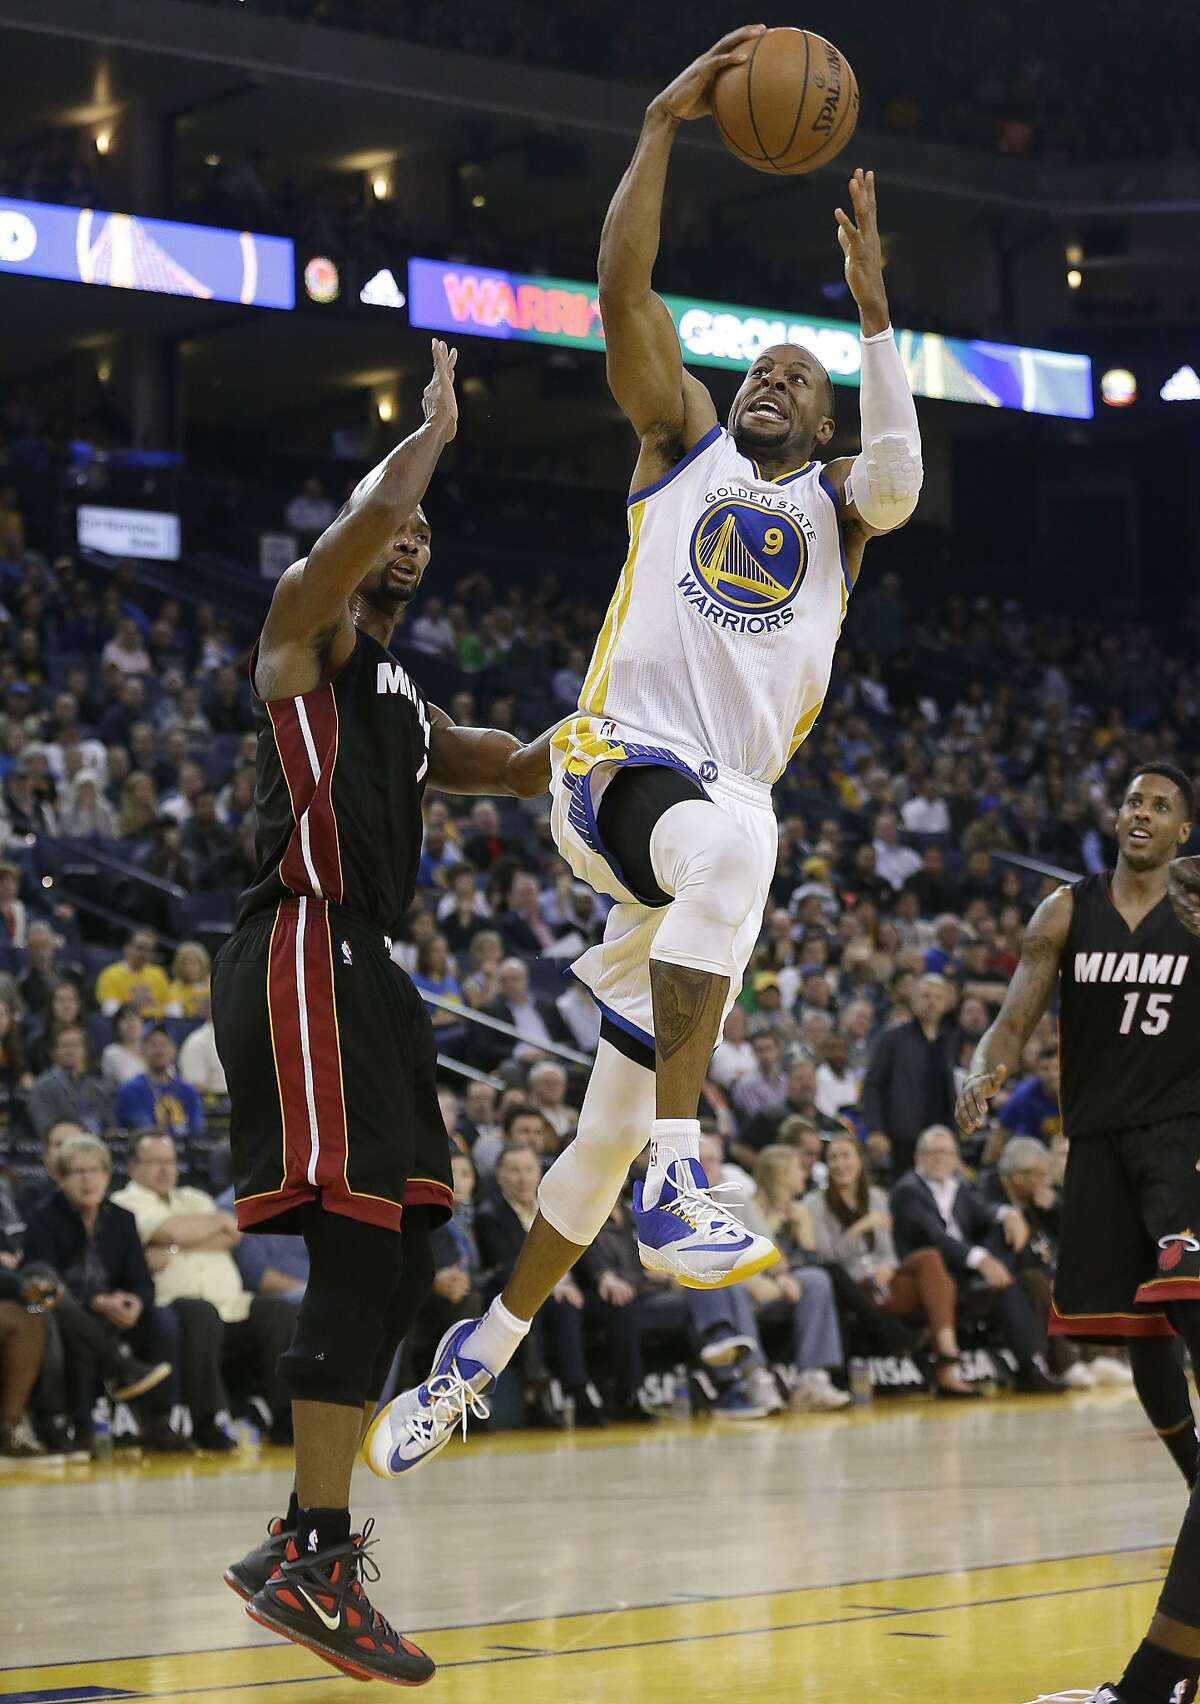 Golden State Warriors forward Andre Iguodala (9) shoots against Miami Heat forward Chris Bosh during the second half of an NBA basketball game in Oakland, Calif., Wednesday, Jan. 14, 2015. The Warriors won 104-89. (AP Photo/Jeff Chiu)